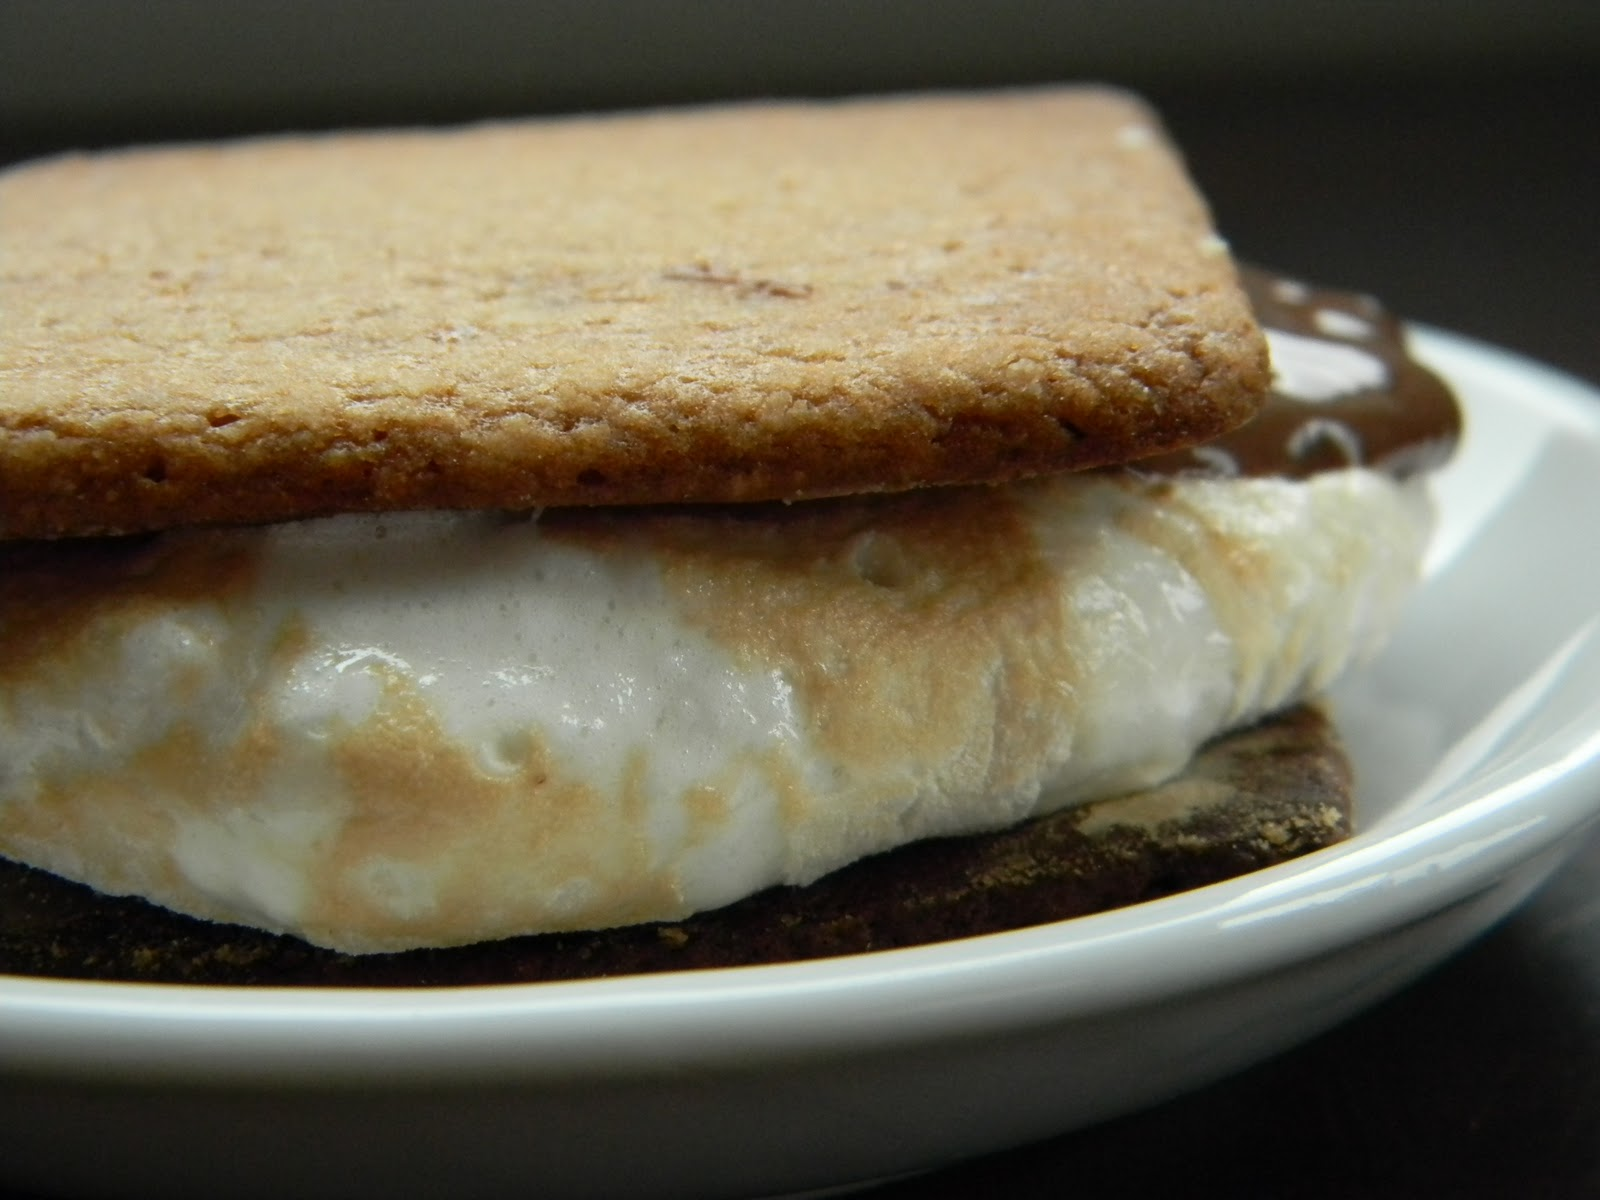 Recipes from the Pickle Boat: Homemade S'mores